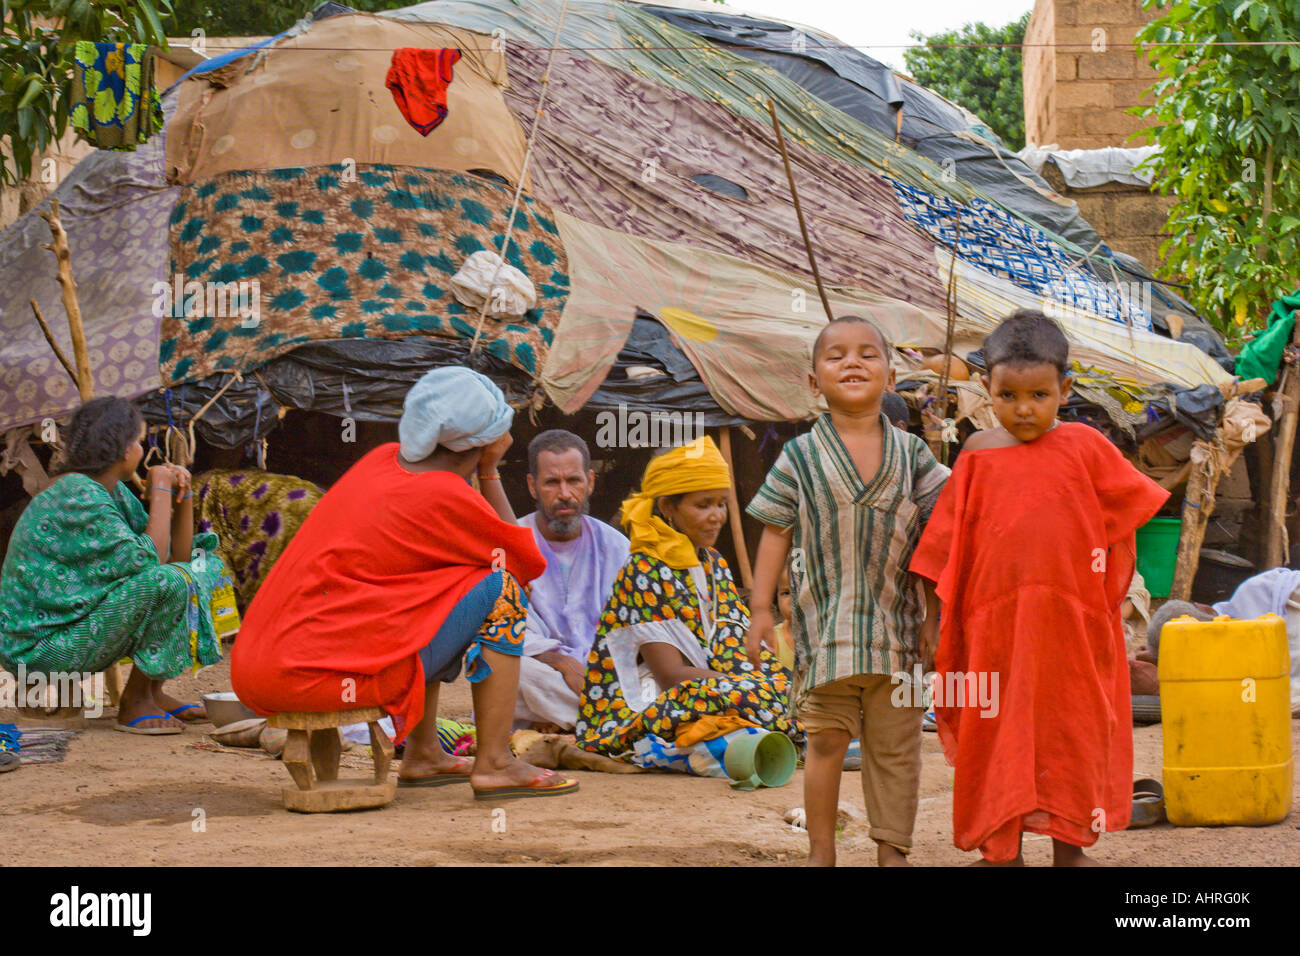 Touareg Children in Burkina Faso - Stock Image